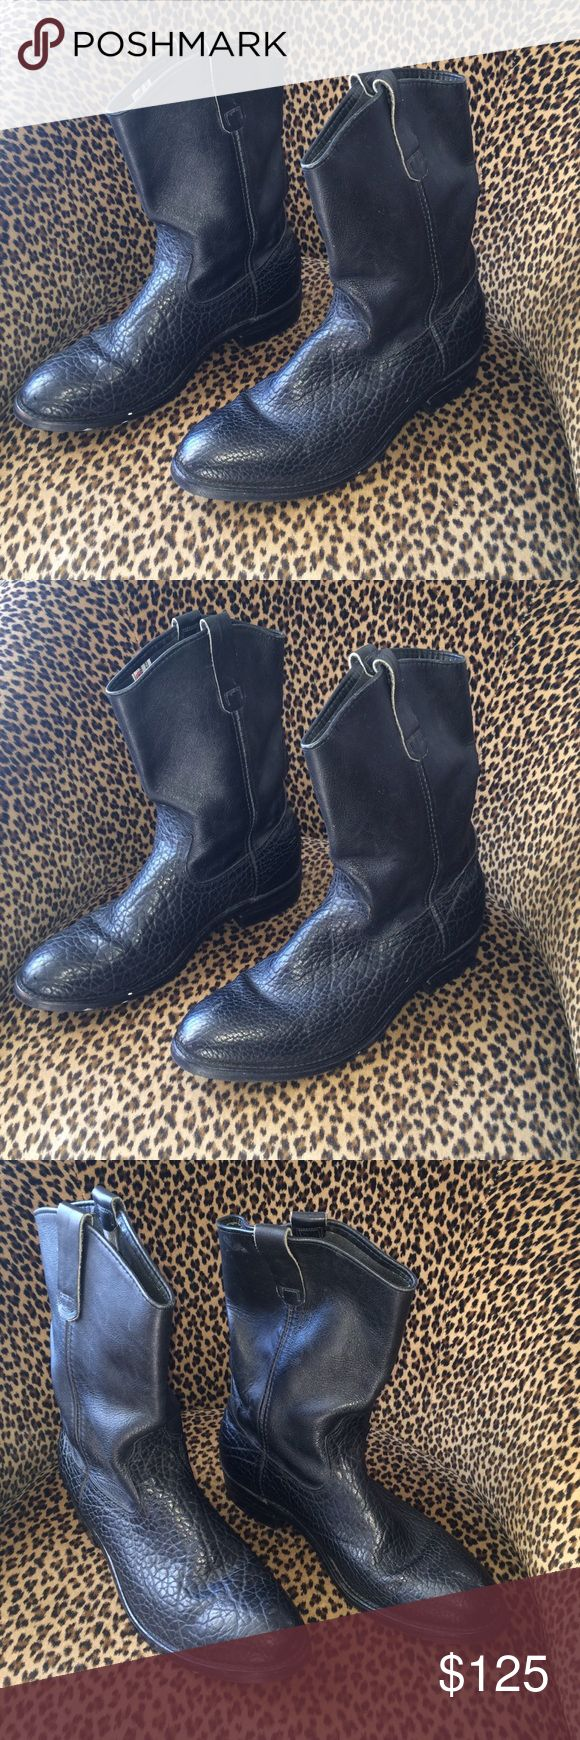 Red Wing Motorcycle Black Boots snake pattern EUC This is a nice pair of gently used Red Wing black leather men's boots.  Size 10 1/2  They have a cool snakeskin pattern in them. The tread is pretty nice. Only slightly worn. The leather is very  in EUC. Worn rarely. Red Wing Shoes Shoes Boots